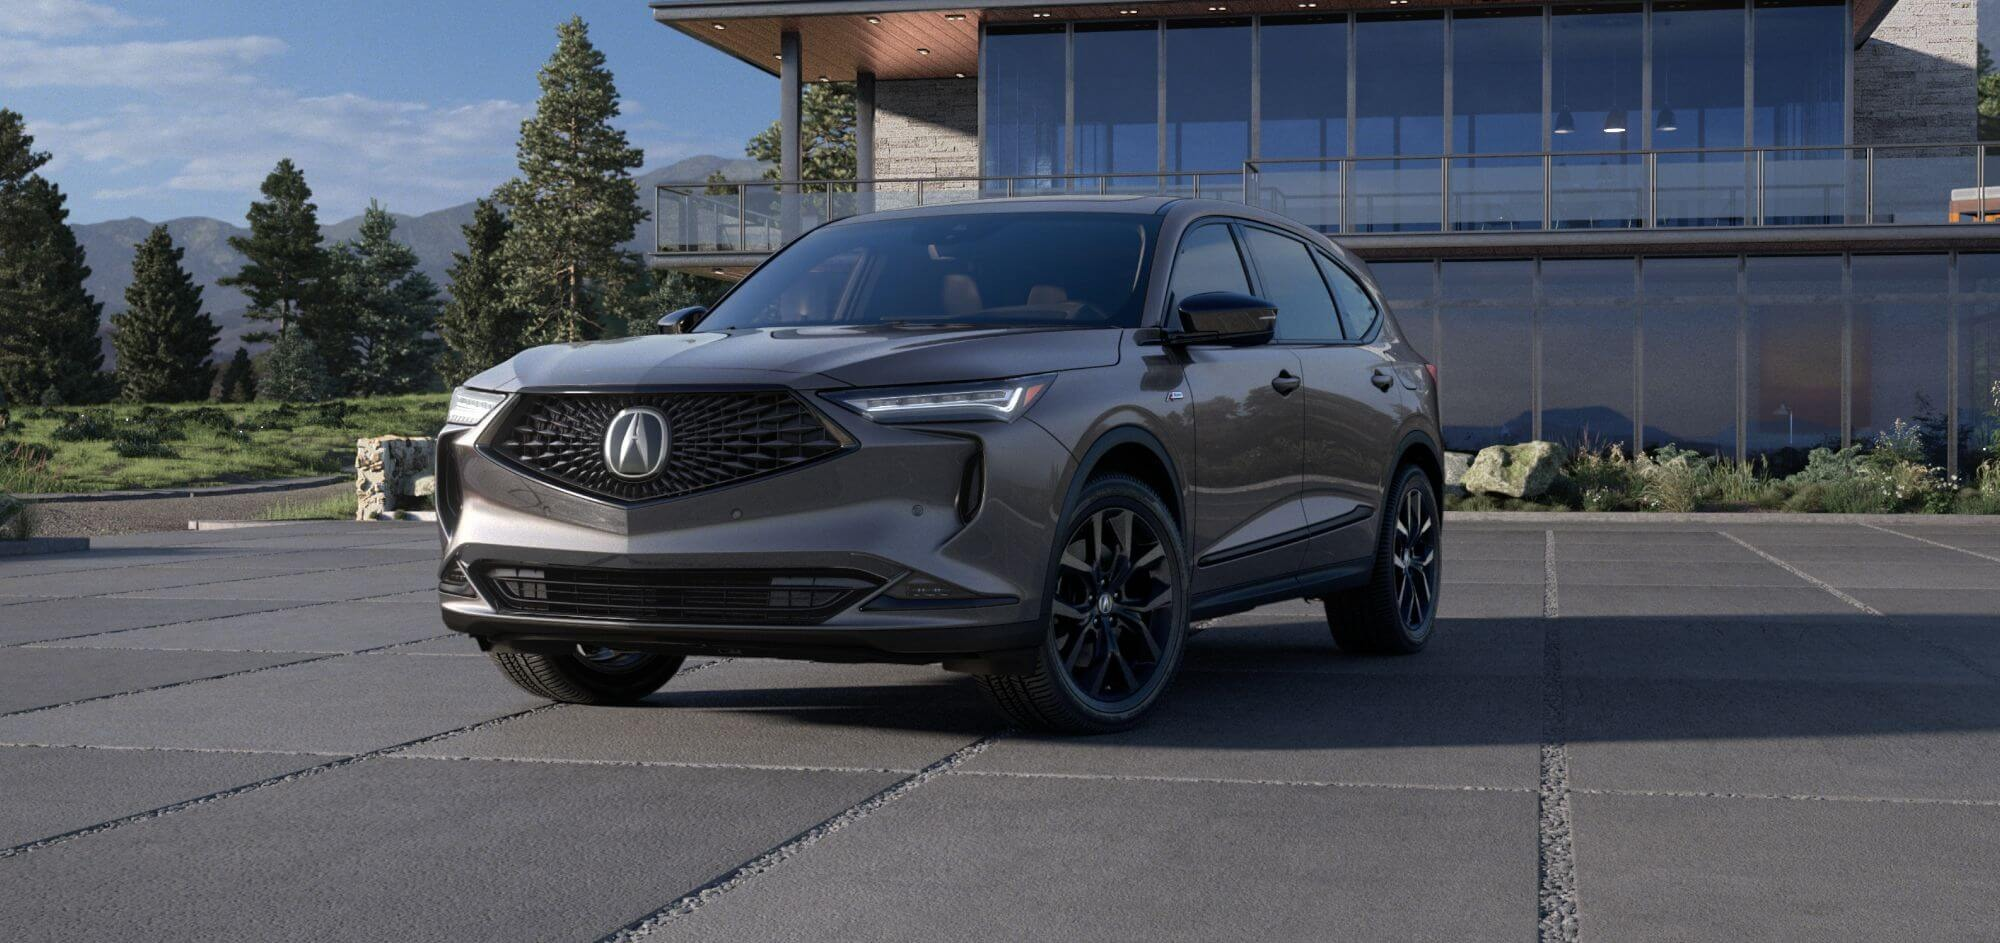 2023 Acura MDX Pictures